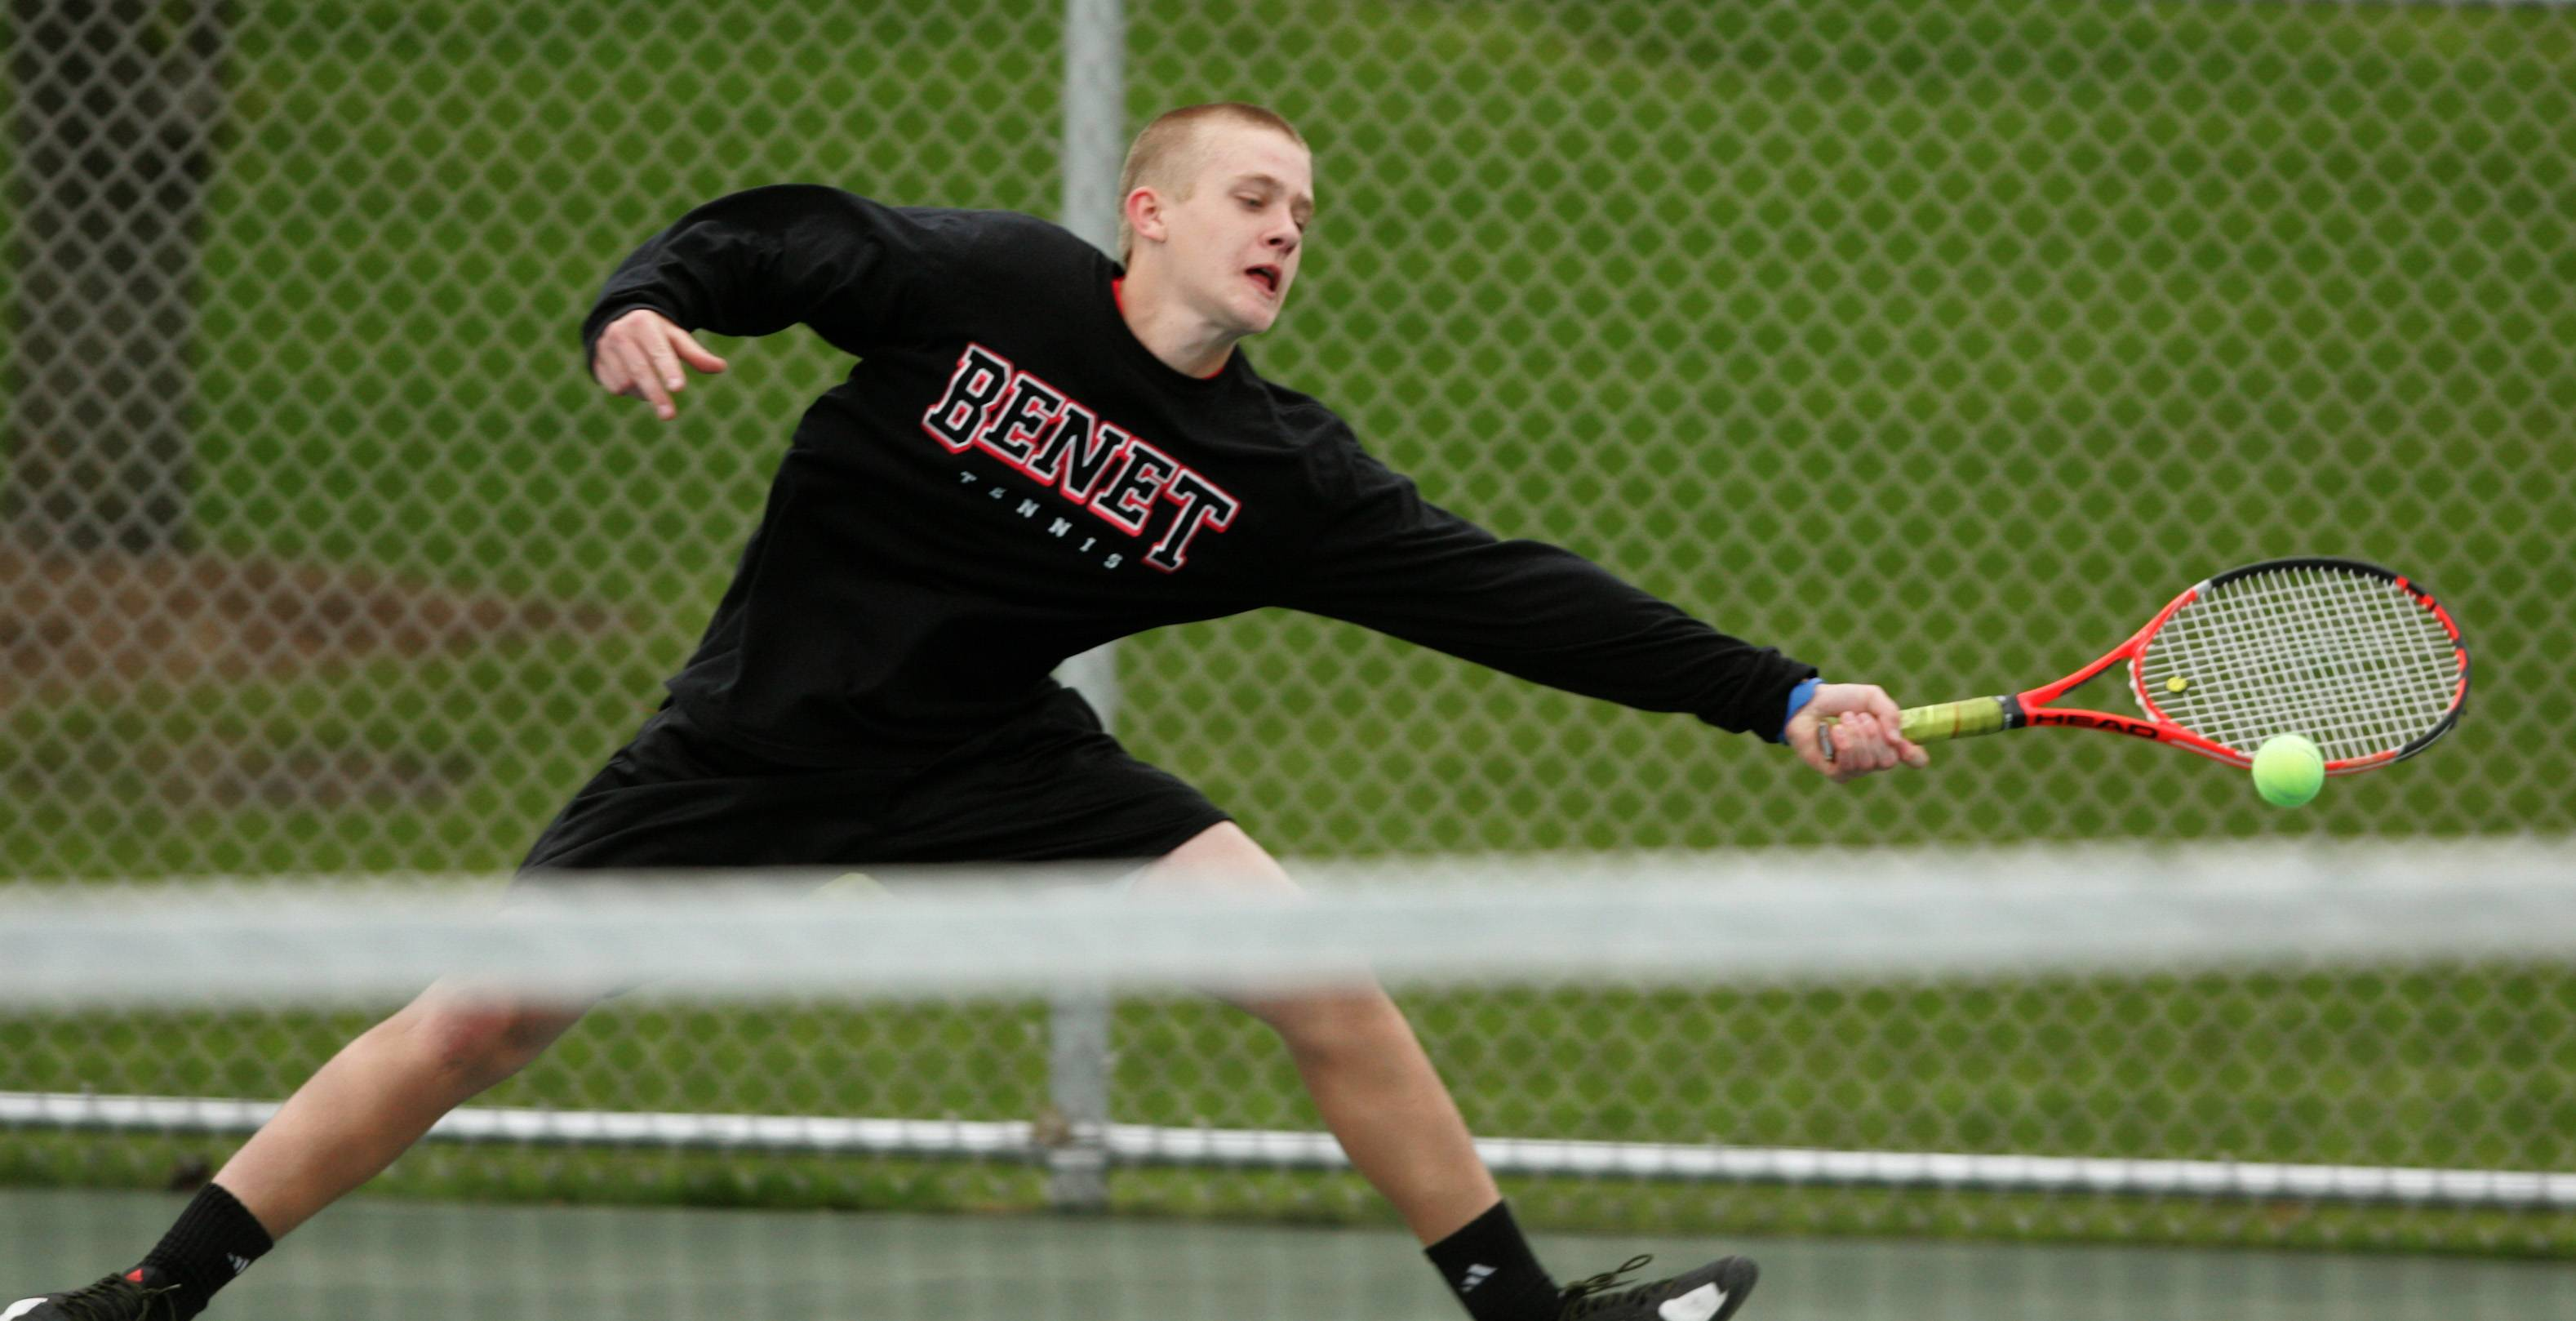 Daniel White/dwhite@dailyherald.com ¬ Number one singles player Noah Read of Benet Academy, returns a volley during the Naperville North Boys Tennis Invitational.